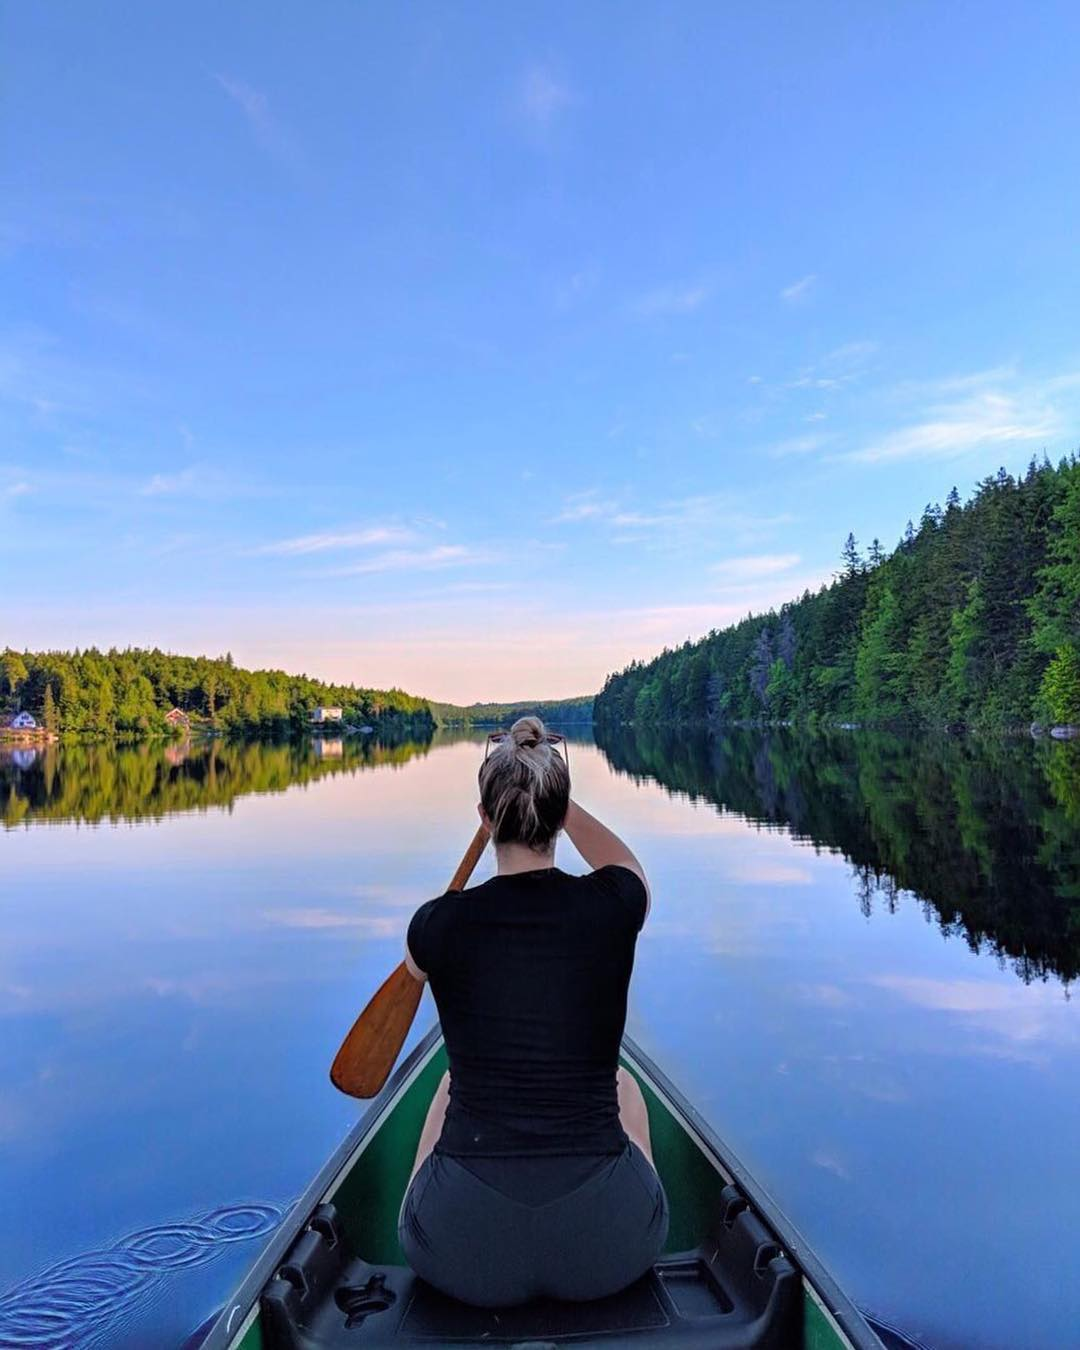 Meanwhile, less than one hour's drive from Downtown Halifax, we have this scene 🙏 . Go to the link in our bio and tap this image to discover 10 Outdoor Adventures You HAVE to Experience This Summer in Halifax 🚣‍♀️ . 📍 Conrod Lake, Eastern Shore Region 📷: @lauraahawkins